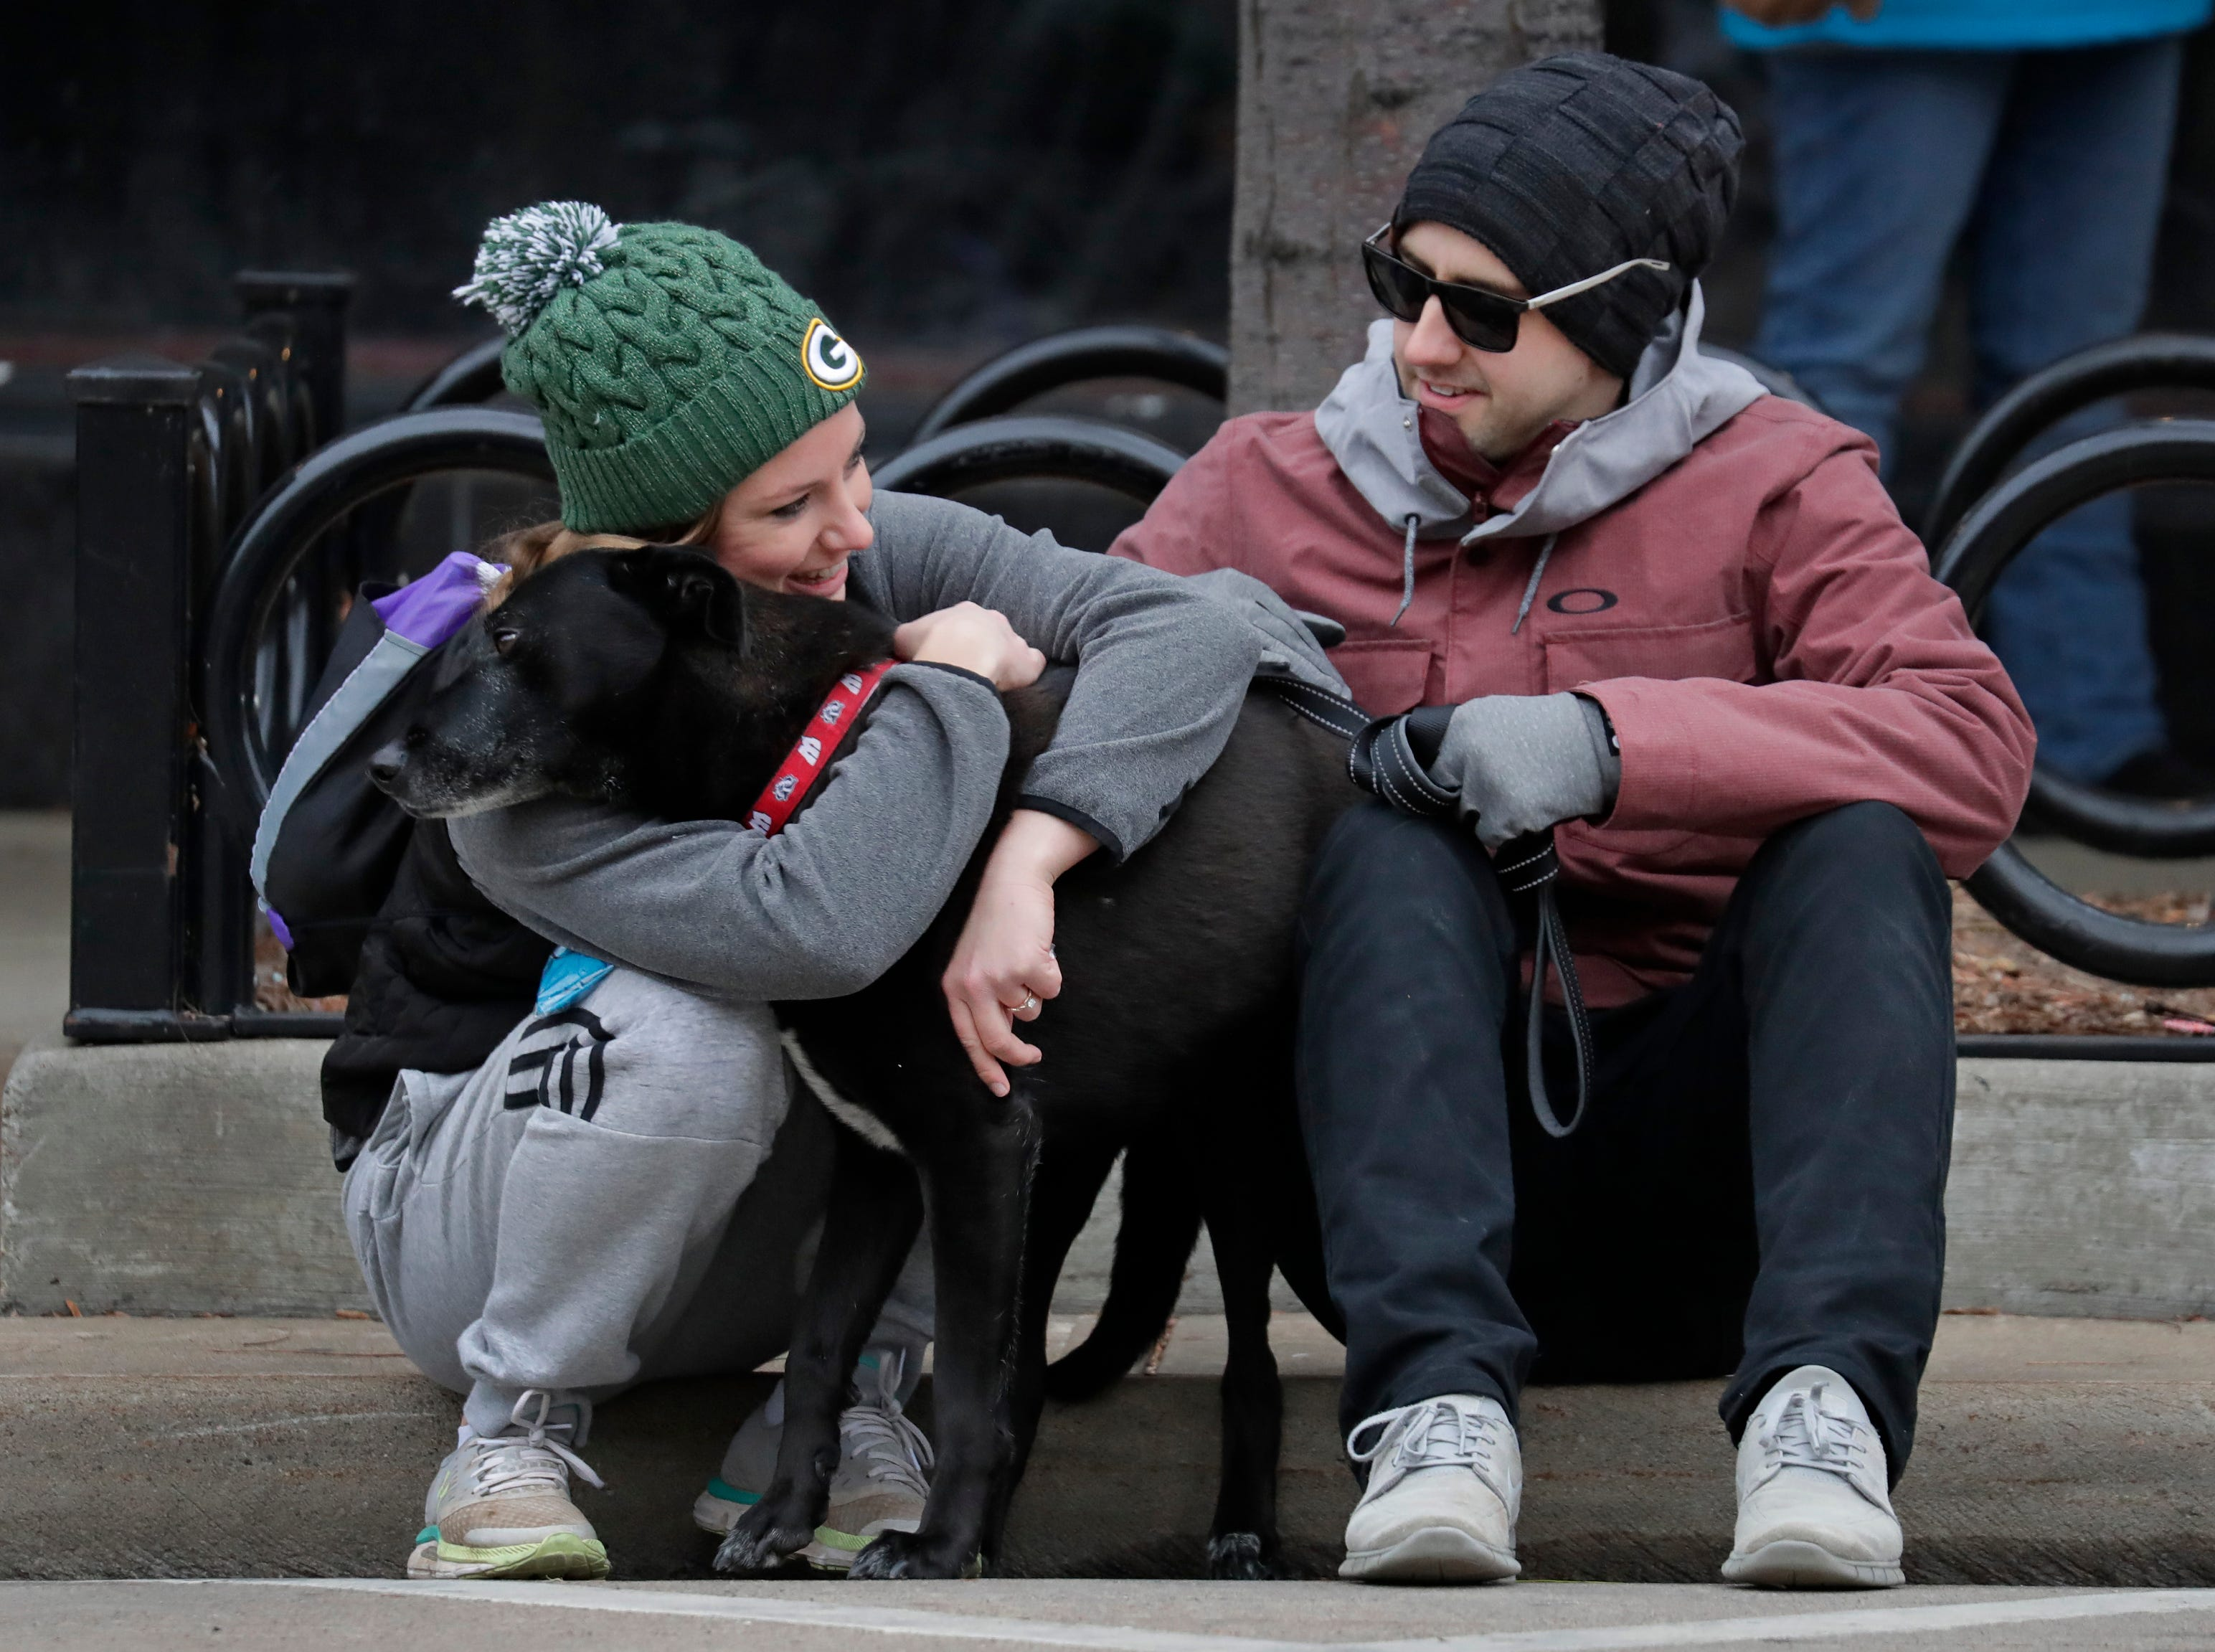 Jessica Becker, left, of Greenville, comforts her dog Buddy prior to running with him during the 11th Annual Festival Foods Turkey Trot Thursday, November 22, 2018, in Appleton, Wis. At right is Jessica's boyfriend David Herrmann of Appleton.